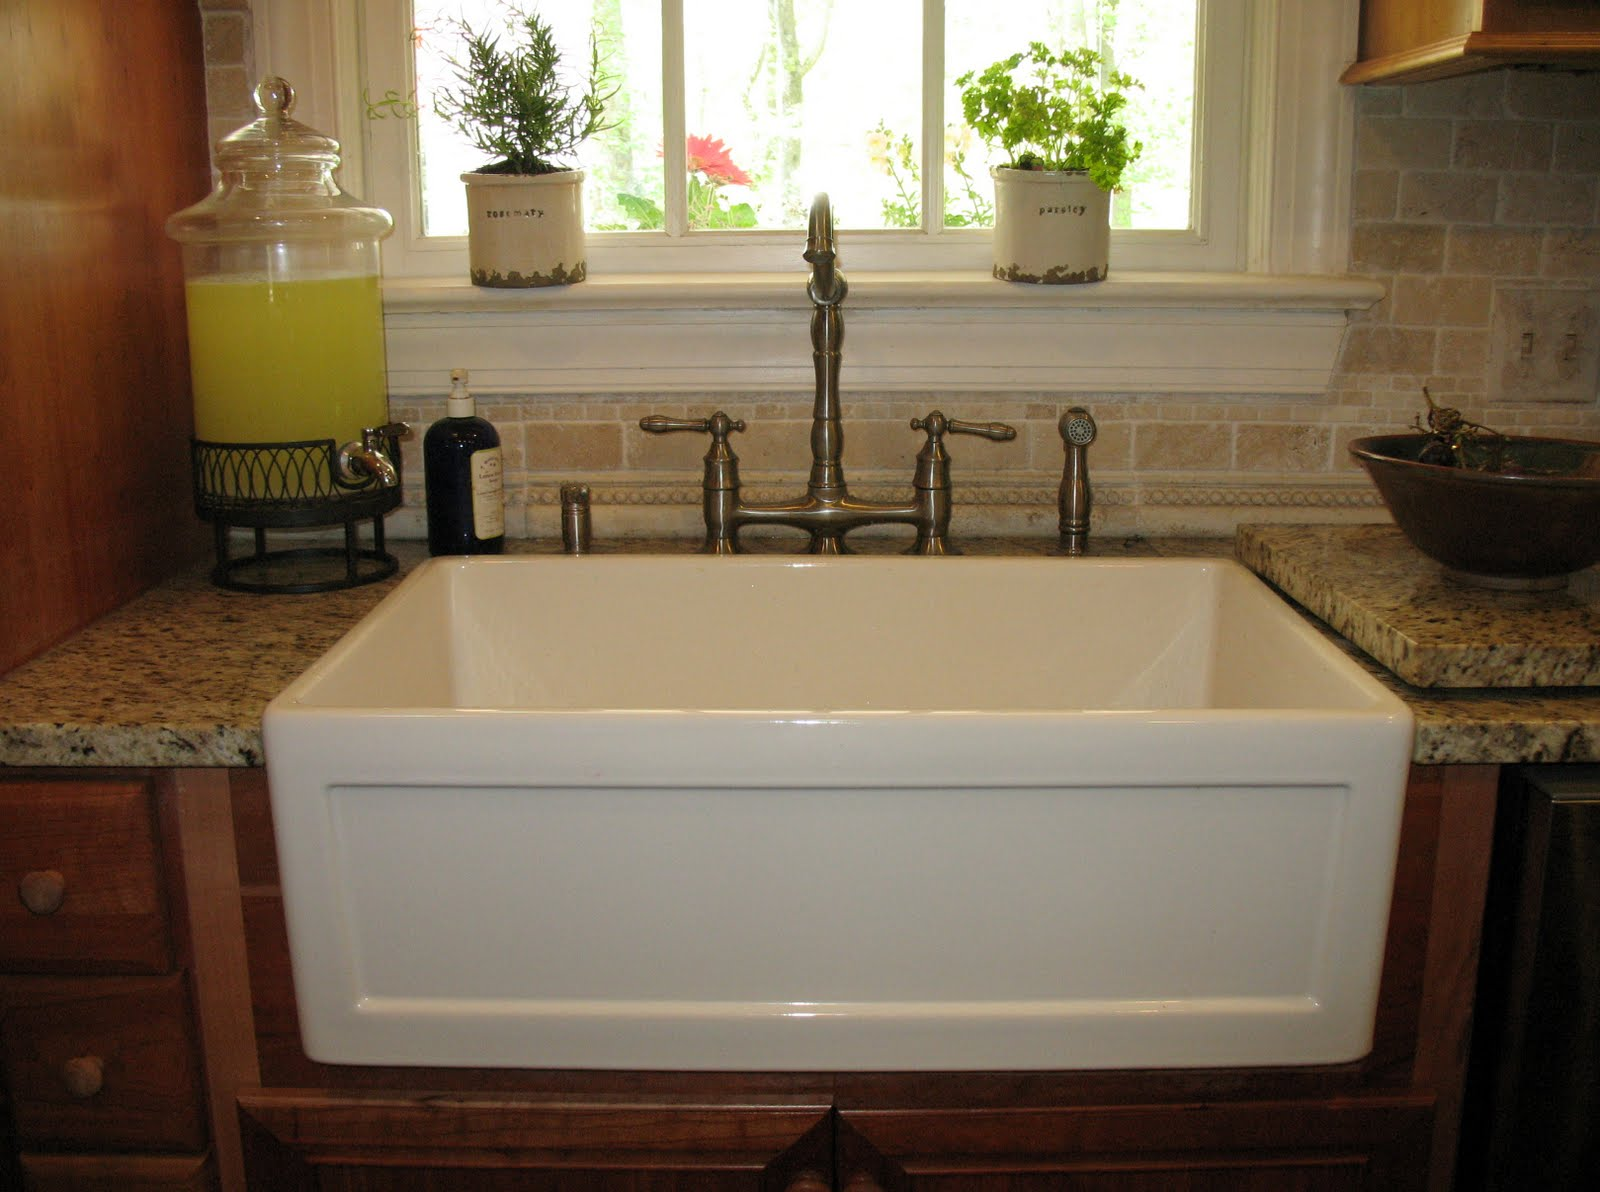 rectangle white apron sink plus faucet on wooden kitchen cabinet with countertop for kitchen furniture ideas